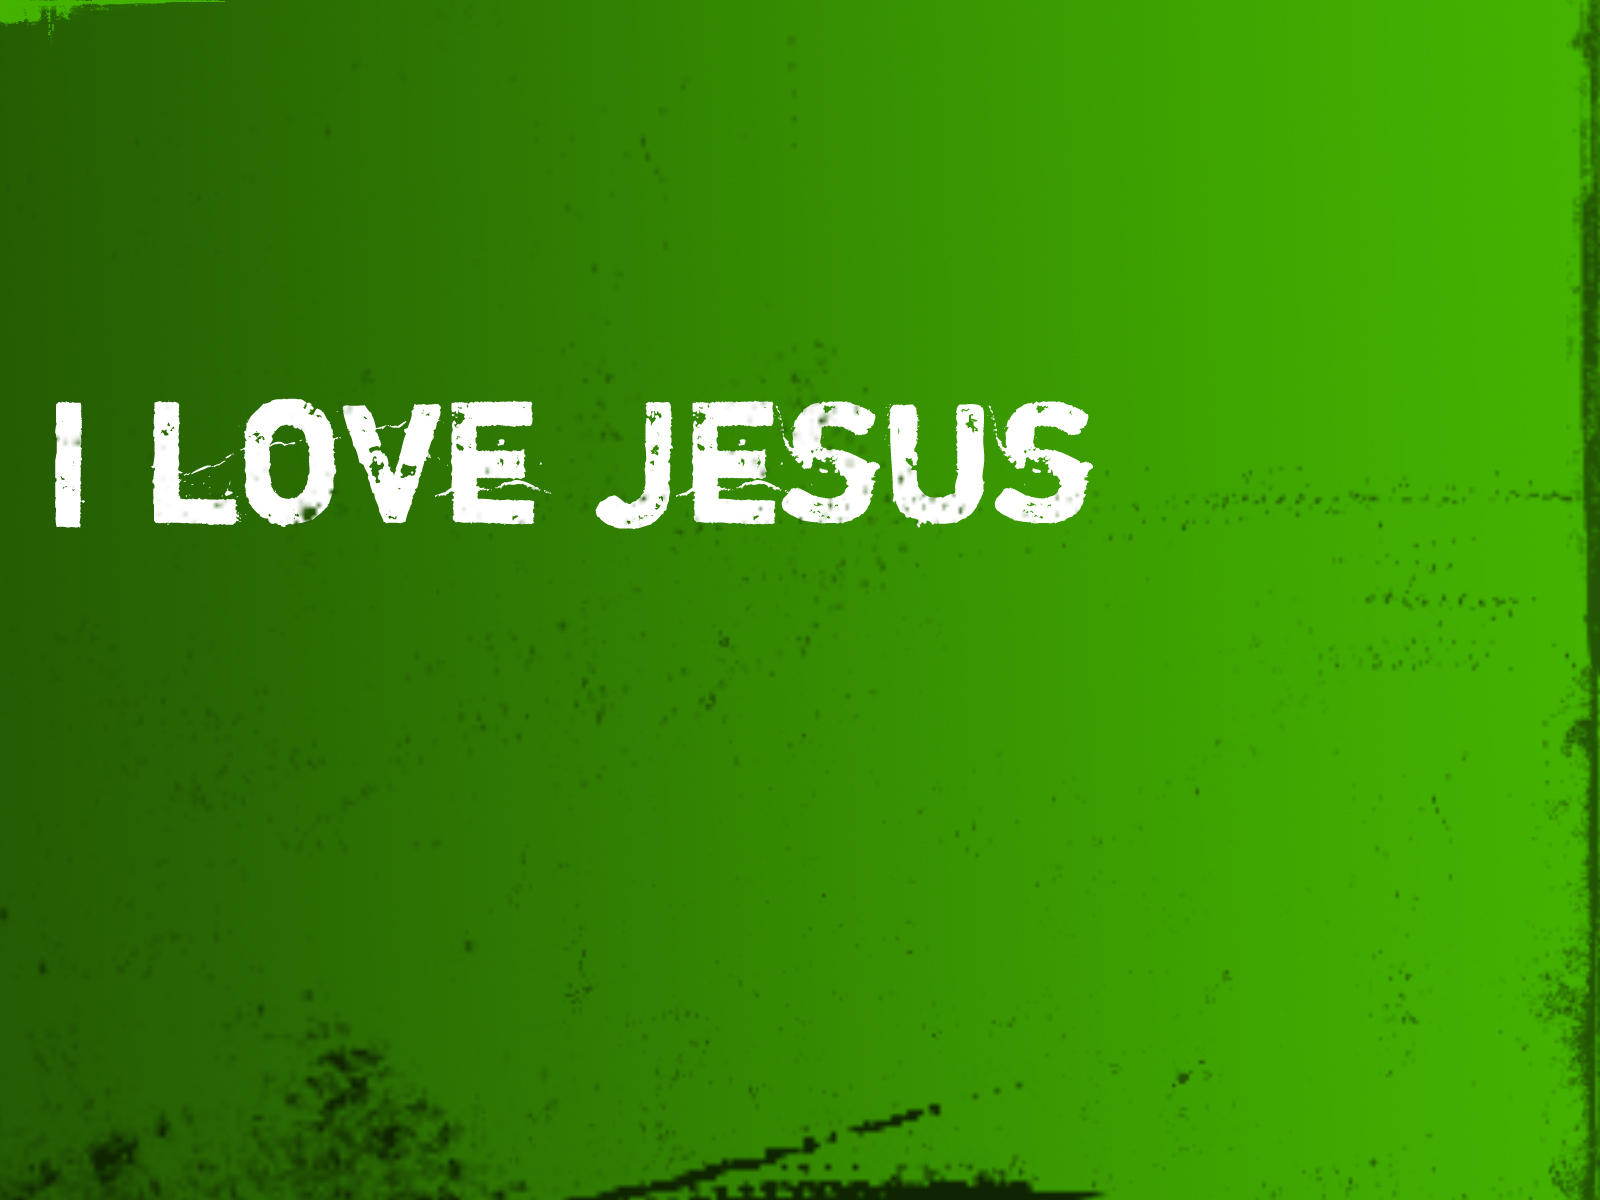 Love Jesus Wallpaper   Christian Wallpapers and Backgrounds 1600x1200